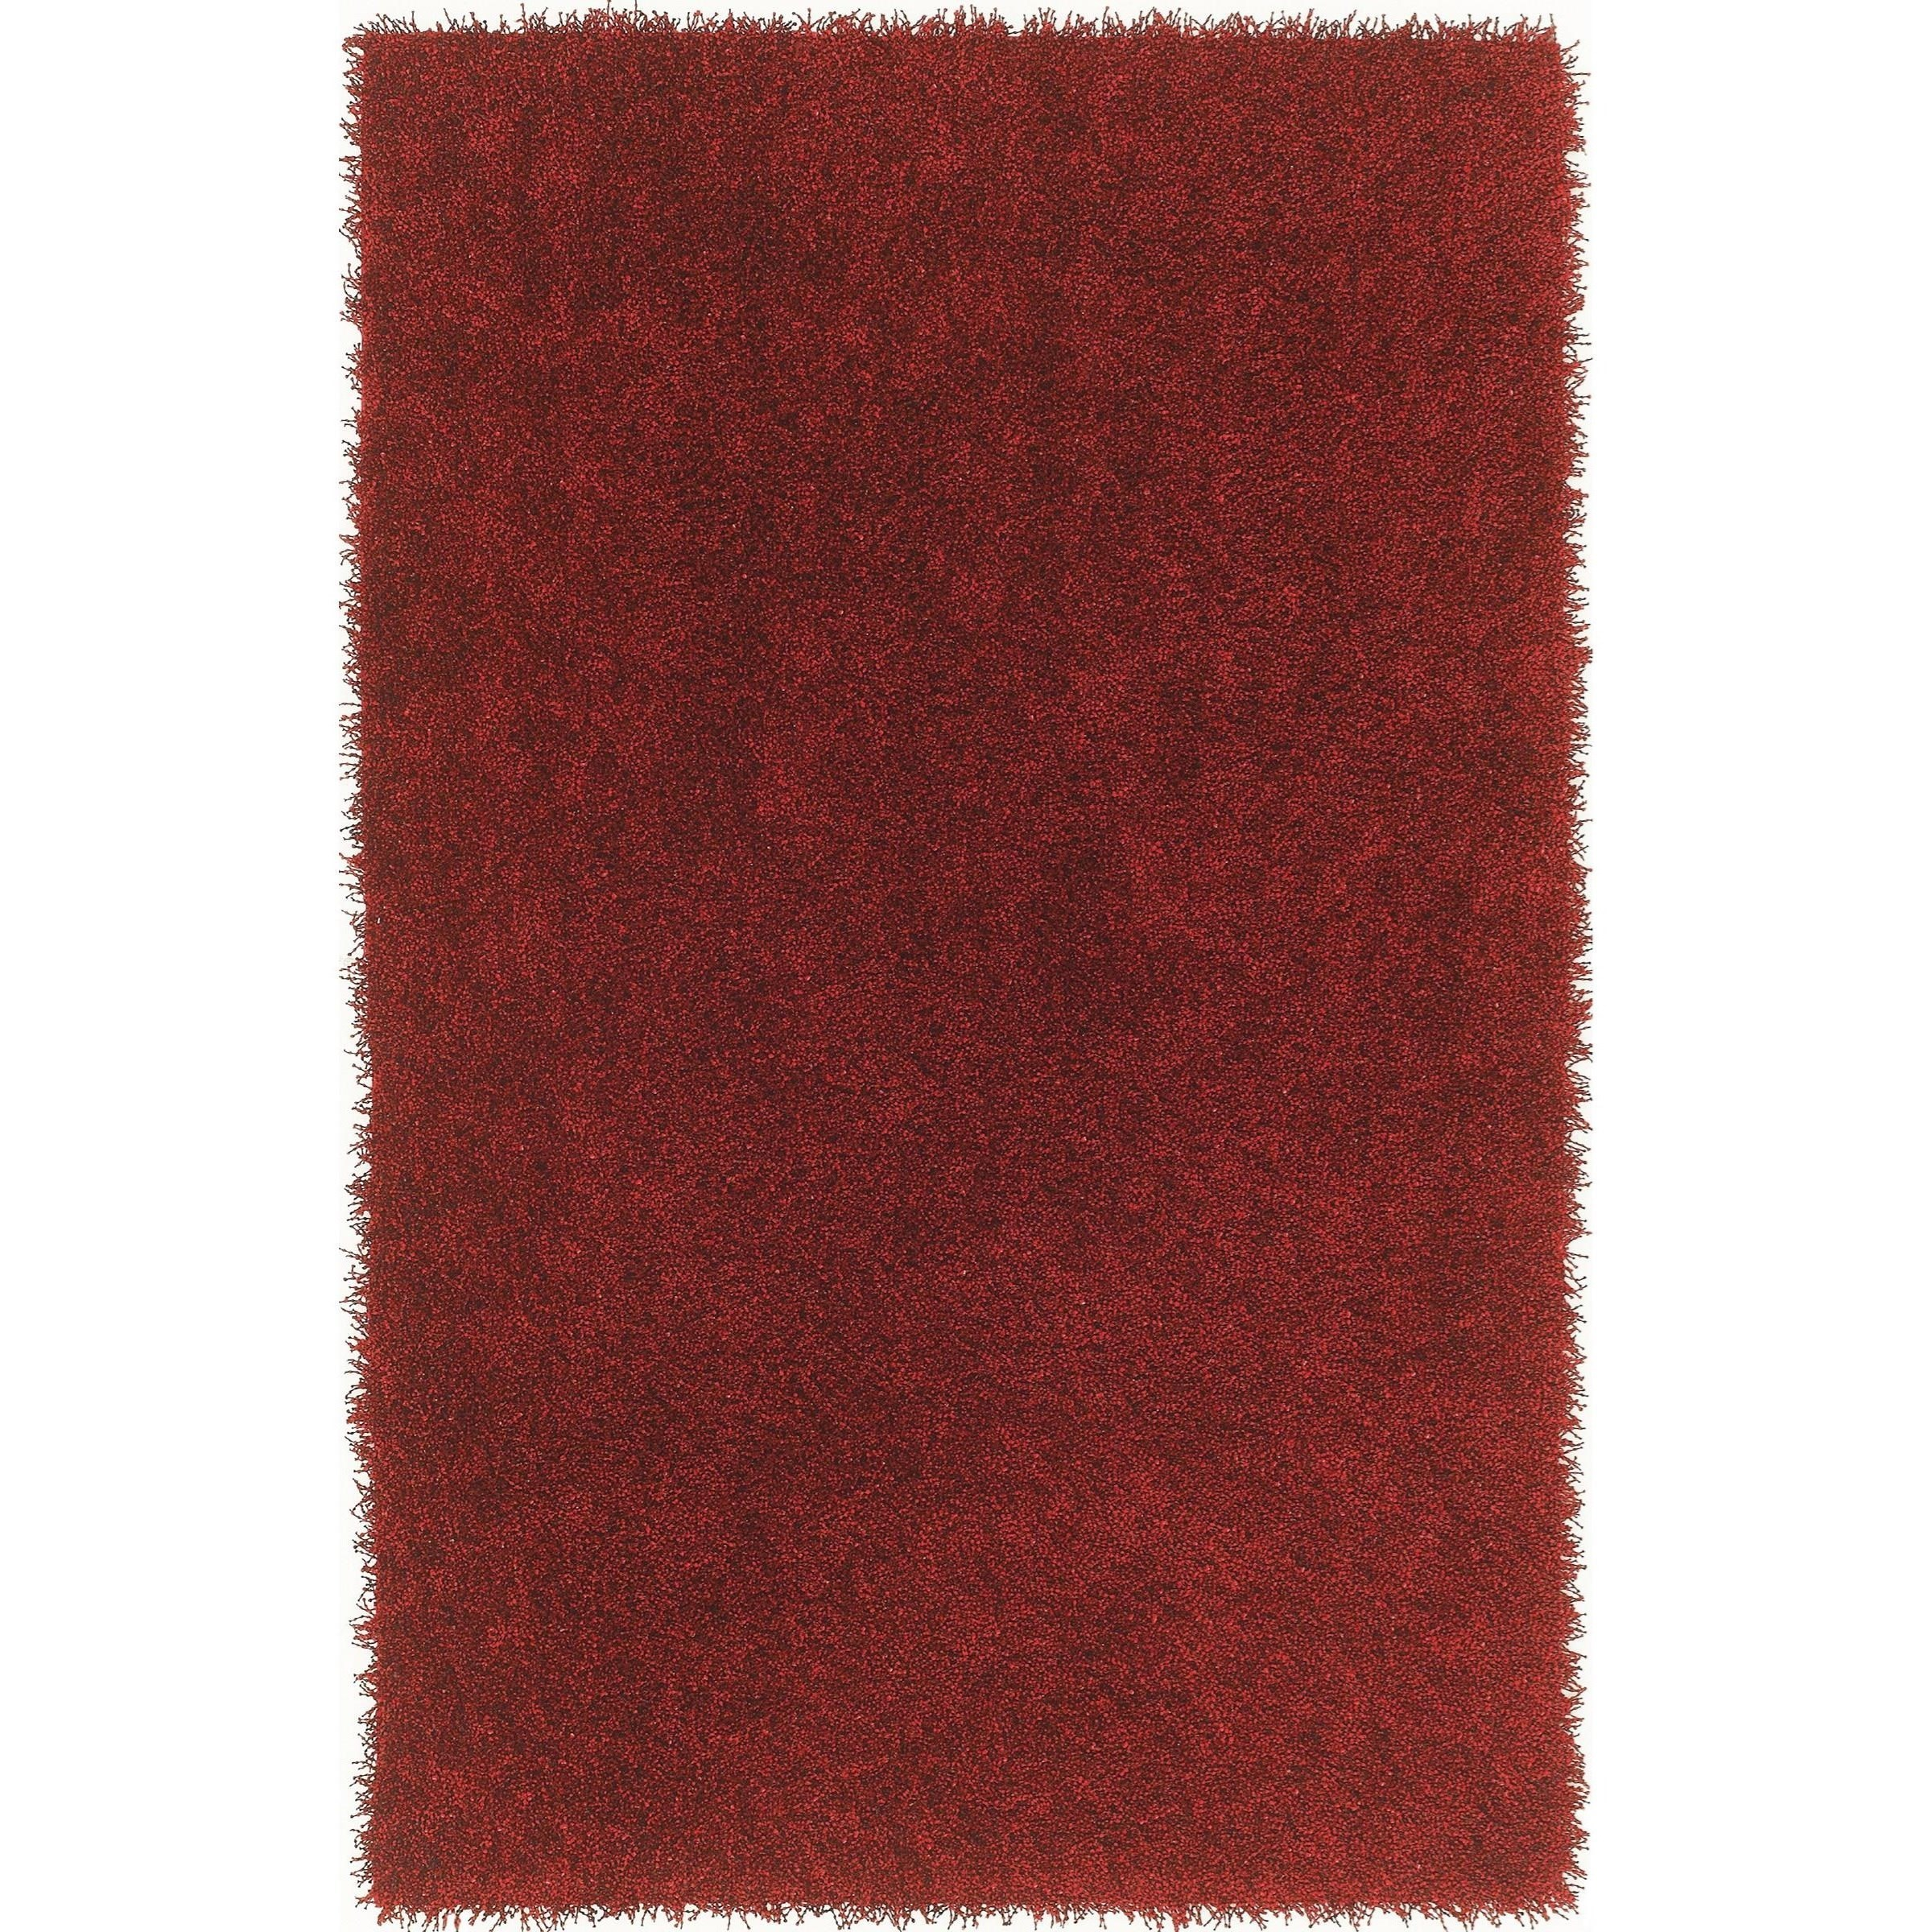 "Belize Red 5'X7'6"" Rug by Dalyn at Sadler's Home Furnishings"